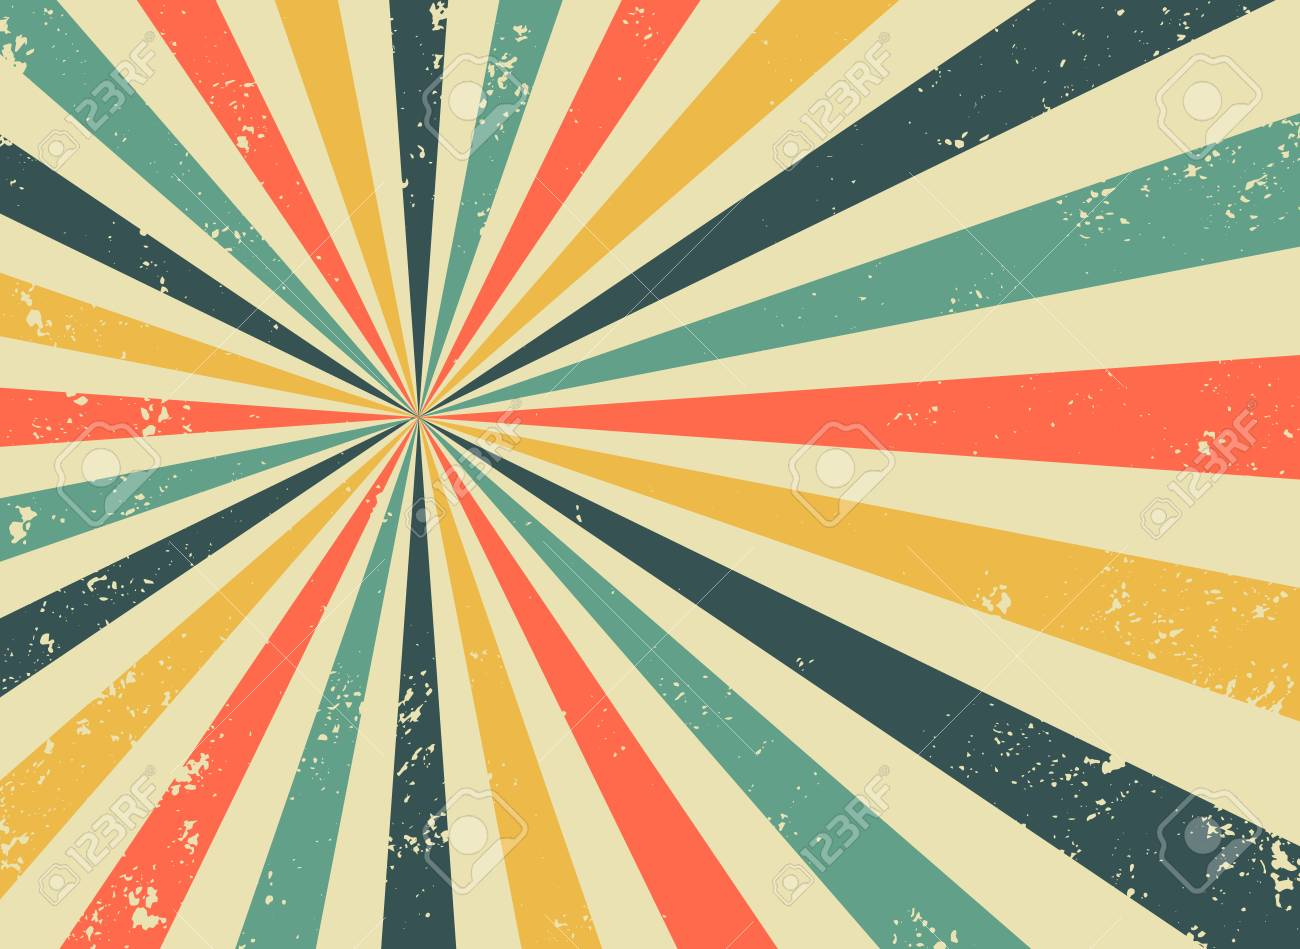 Old Retro Background With Rays And Explosion Imitation Vintage Royalty Free Cliparts Vectors And Stock Illustration Image 123281636 Free for commercial use no attribution required high quality images. old retro background with rays and explosion imitation vintage